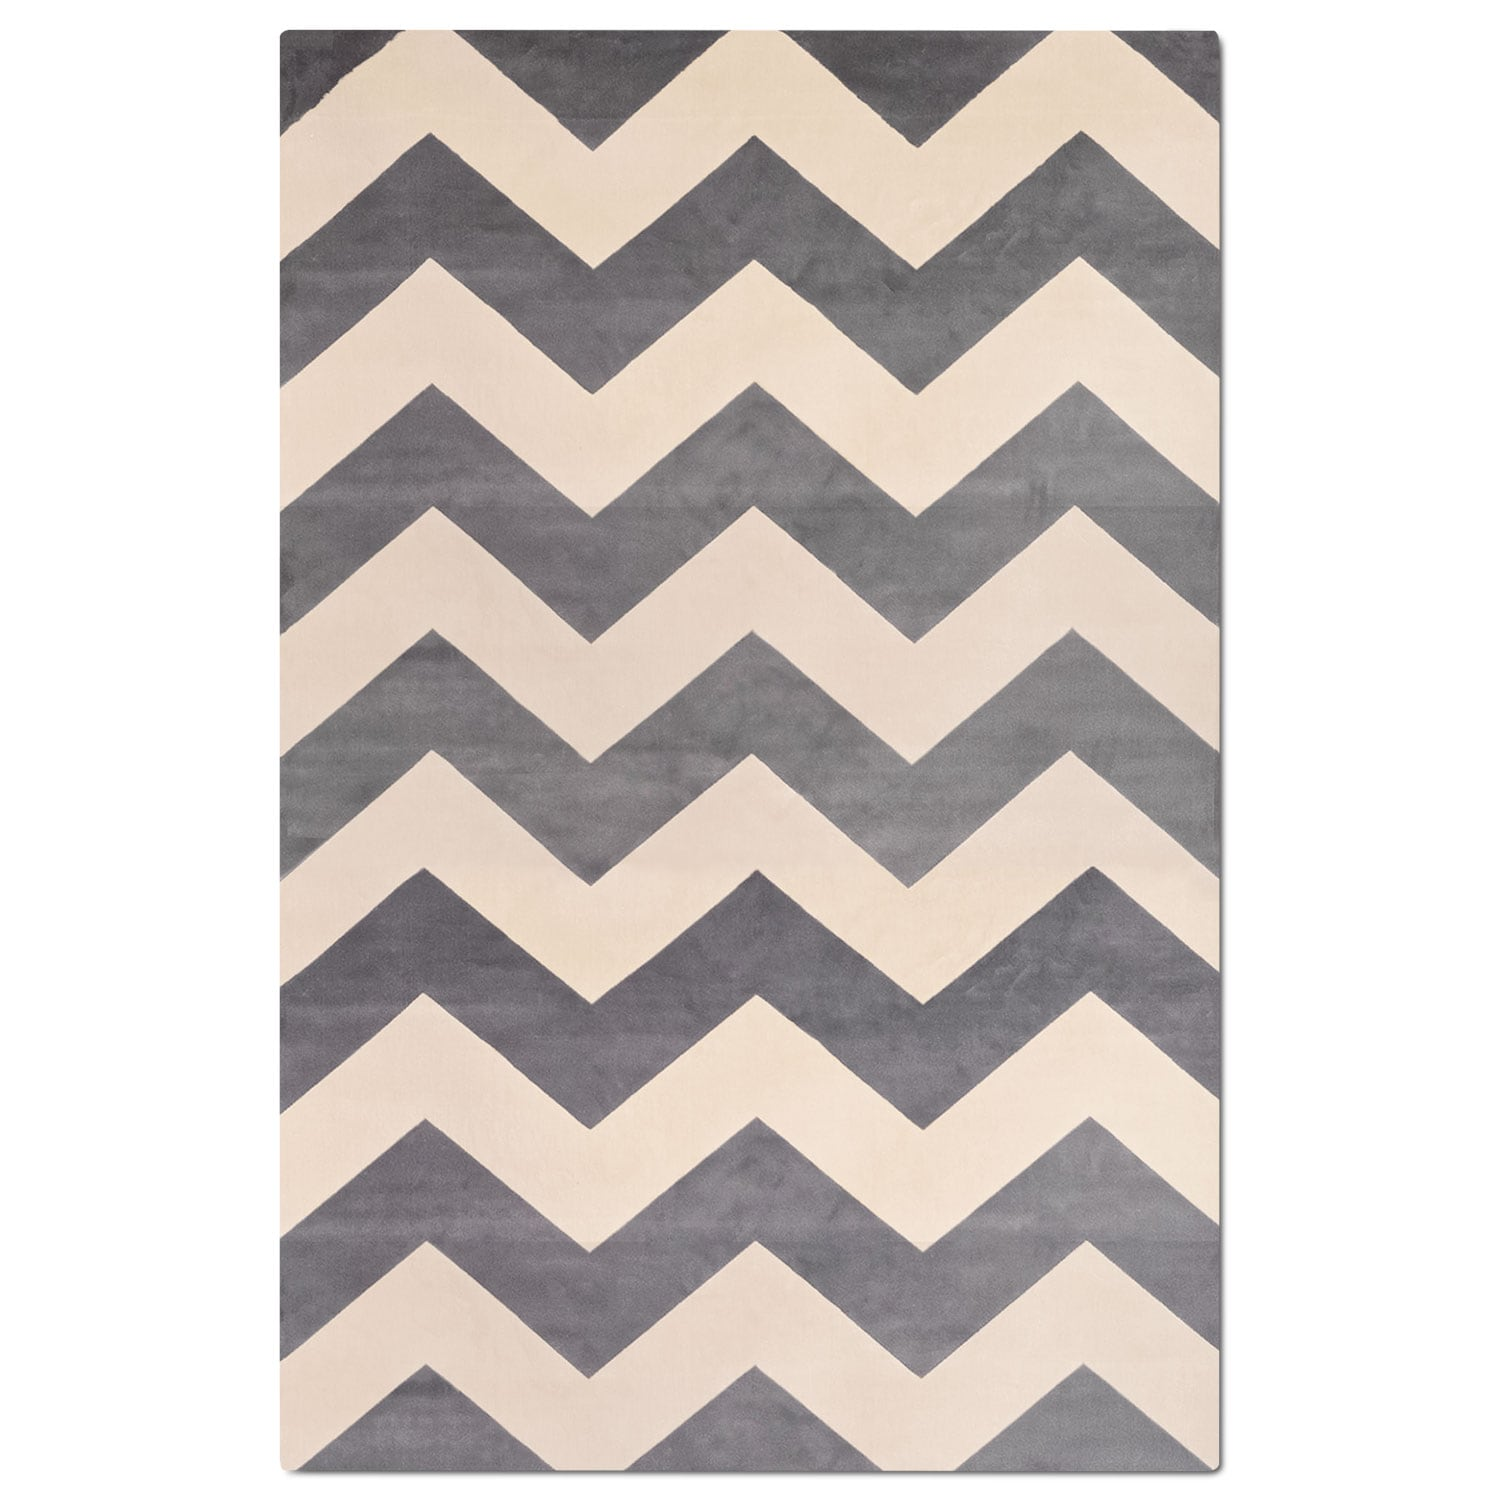 Rugs - Sonoma 8' x 10' Area Rug - Light Blue and Ivory